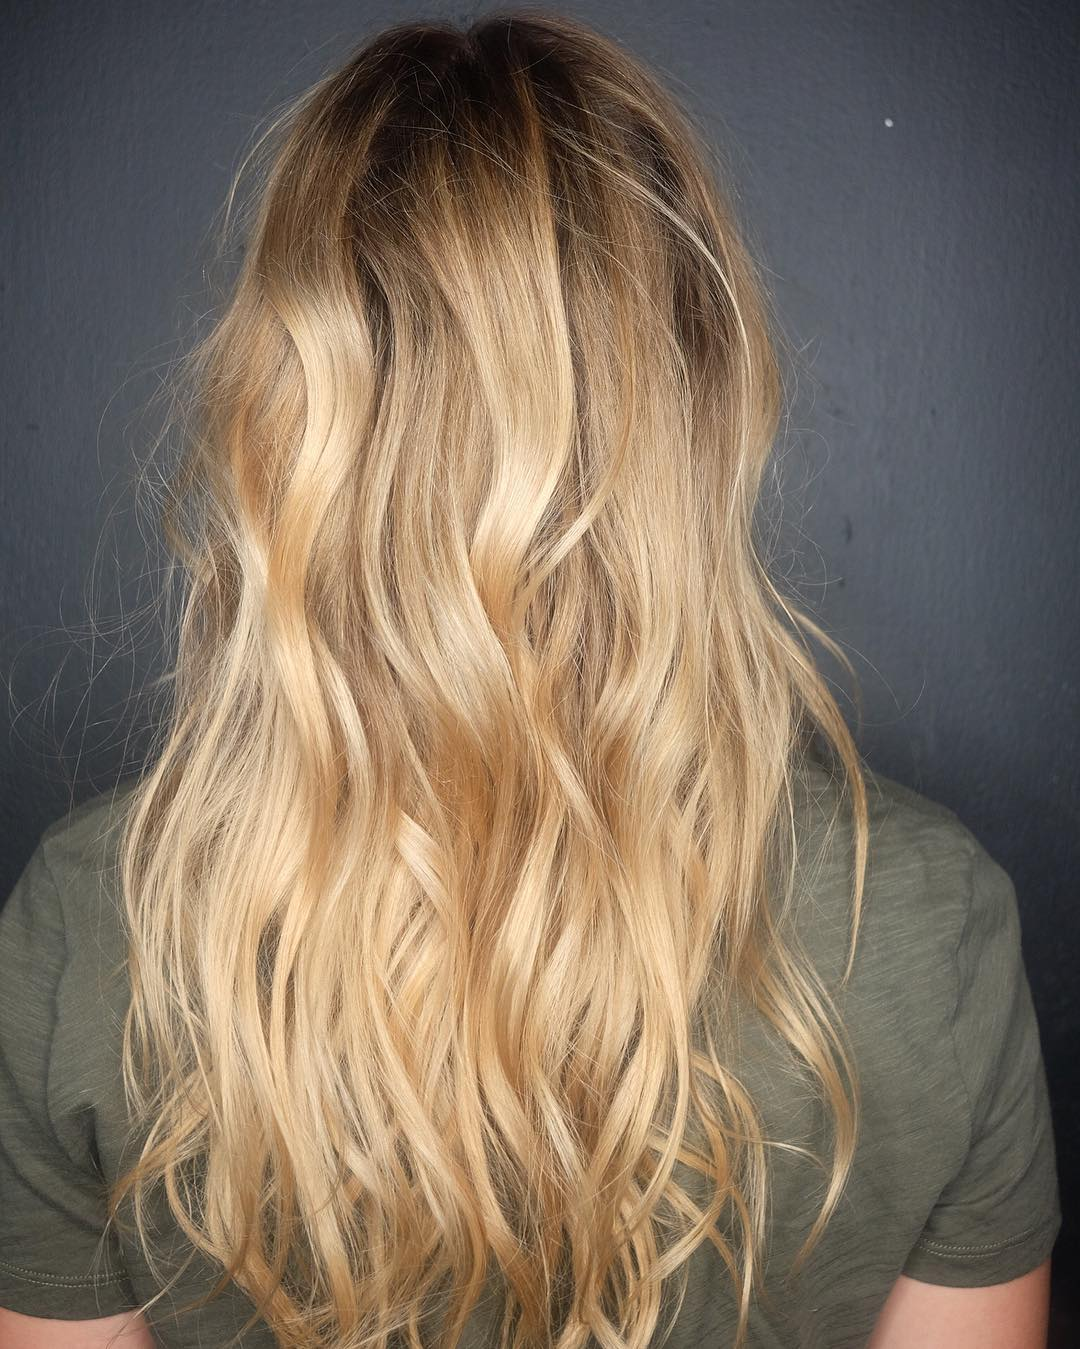 leahhofffhair-long-layered-hairstyle-natural-back